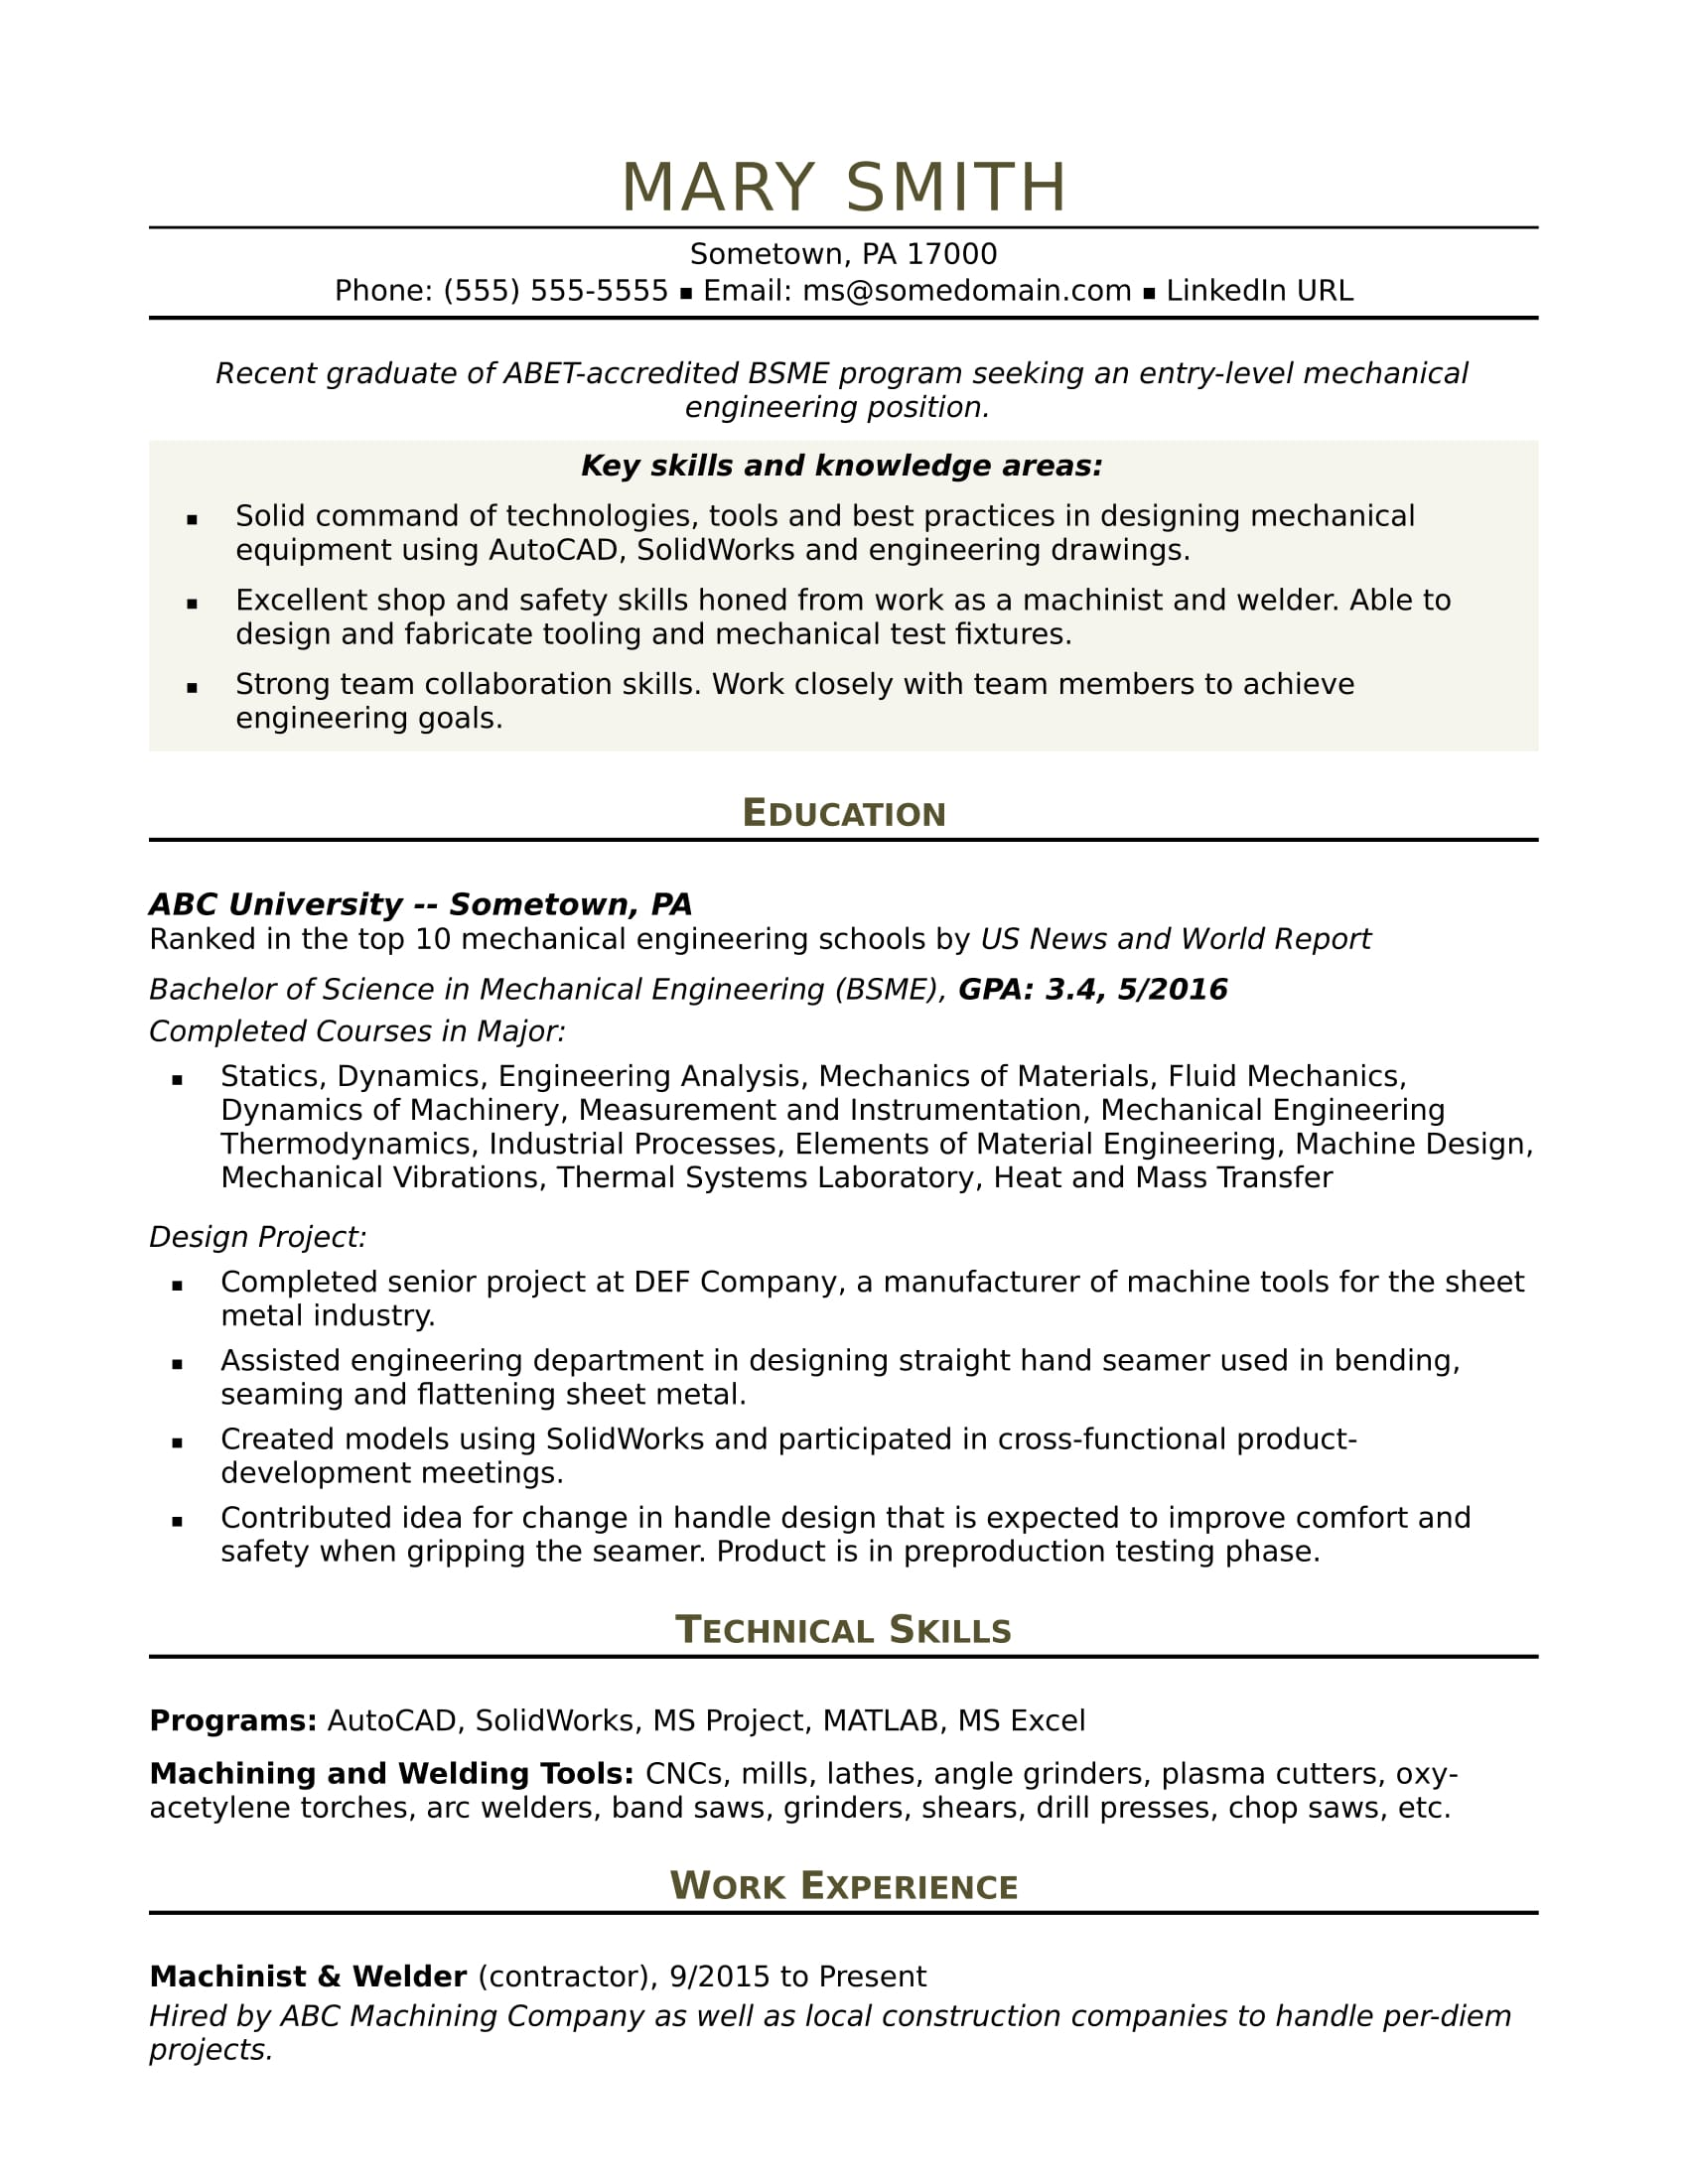 Sample resume for an entry level mechanical engineer monster sample resume for an entry level mechanical engineer madrichimfo Gallery